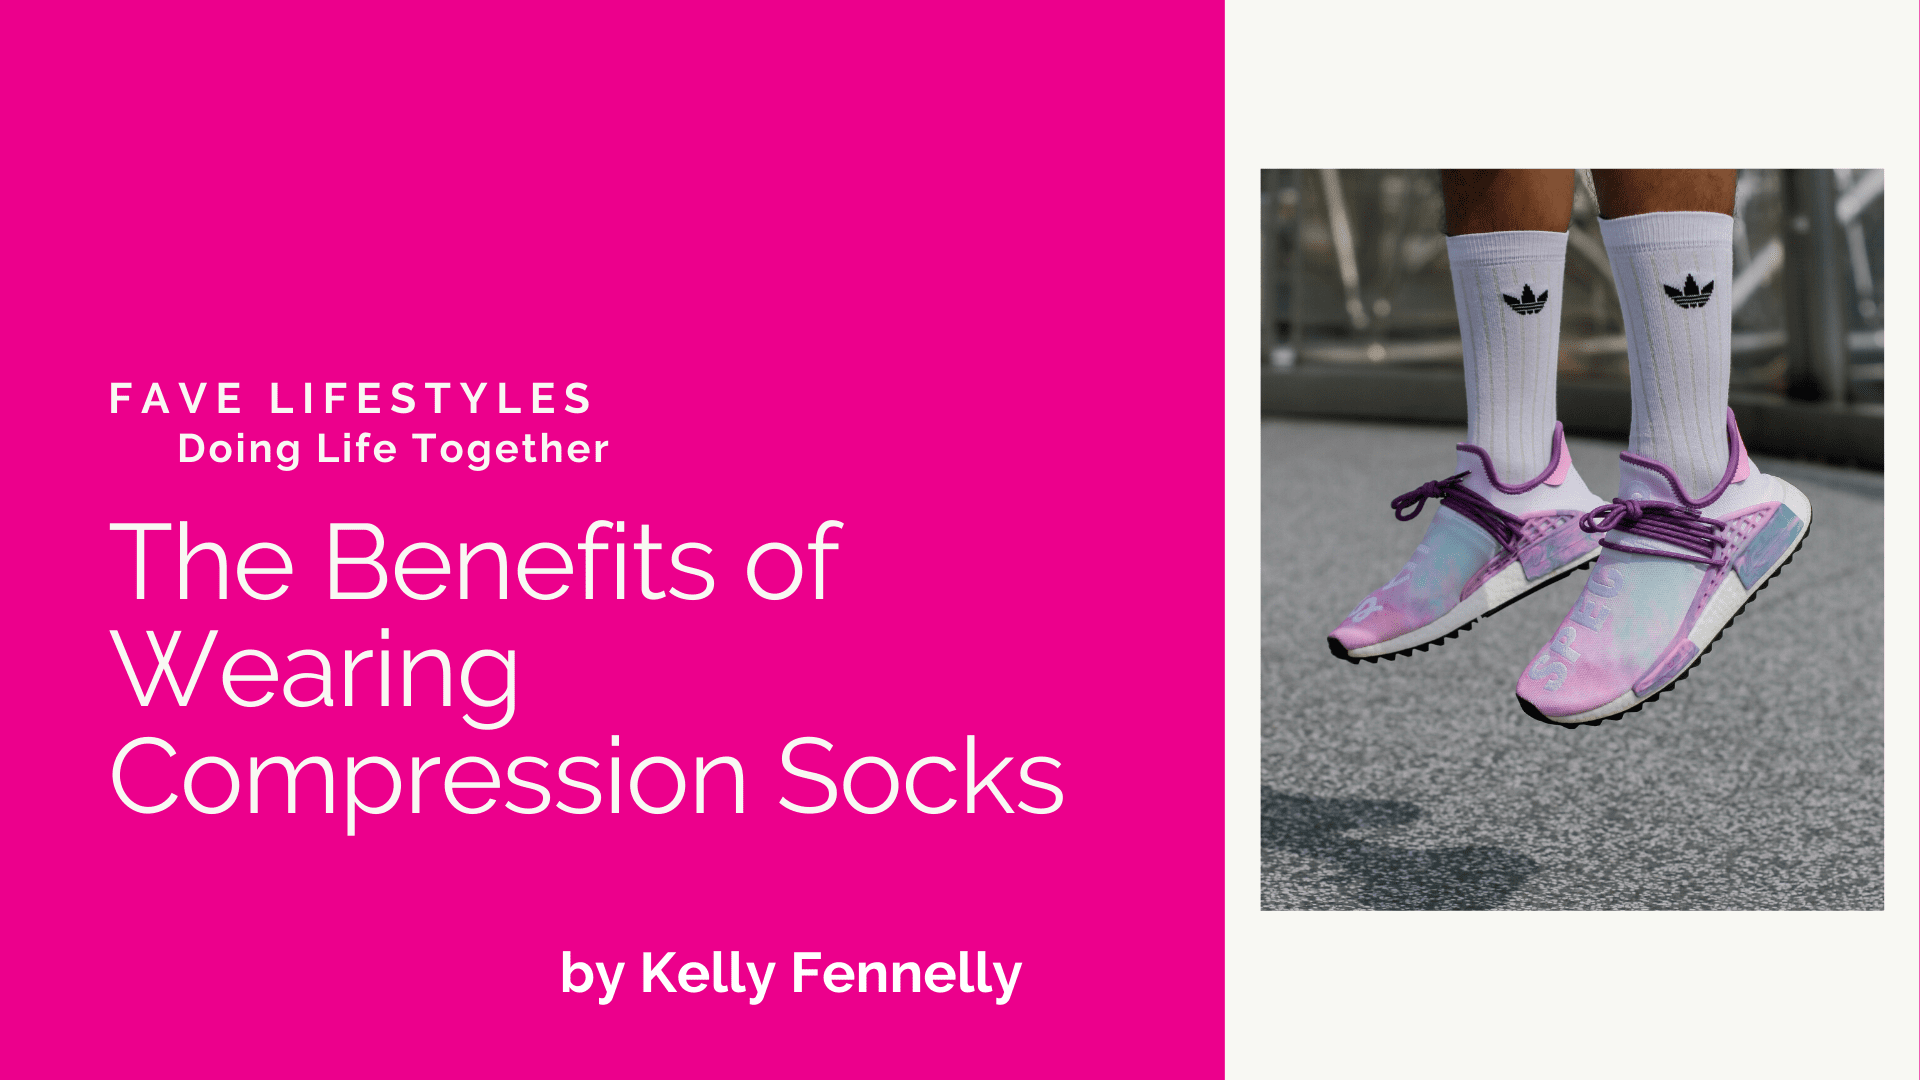 The Benefits of Wearing Compression